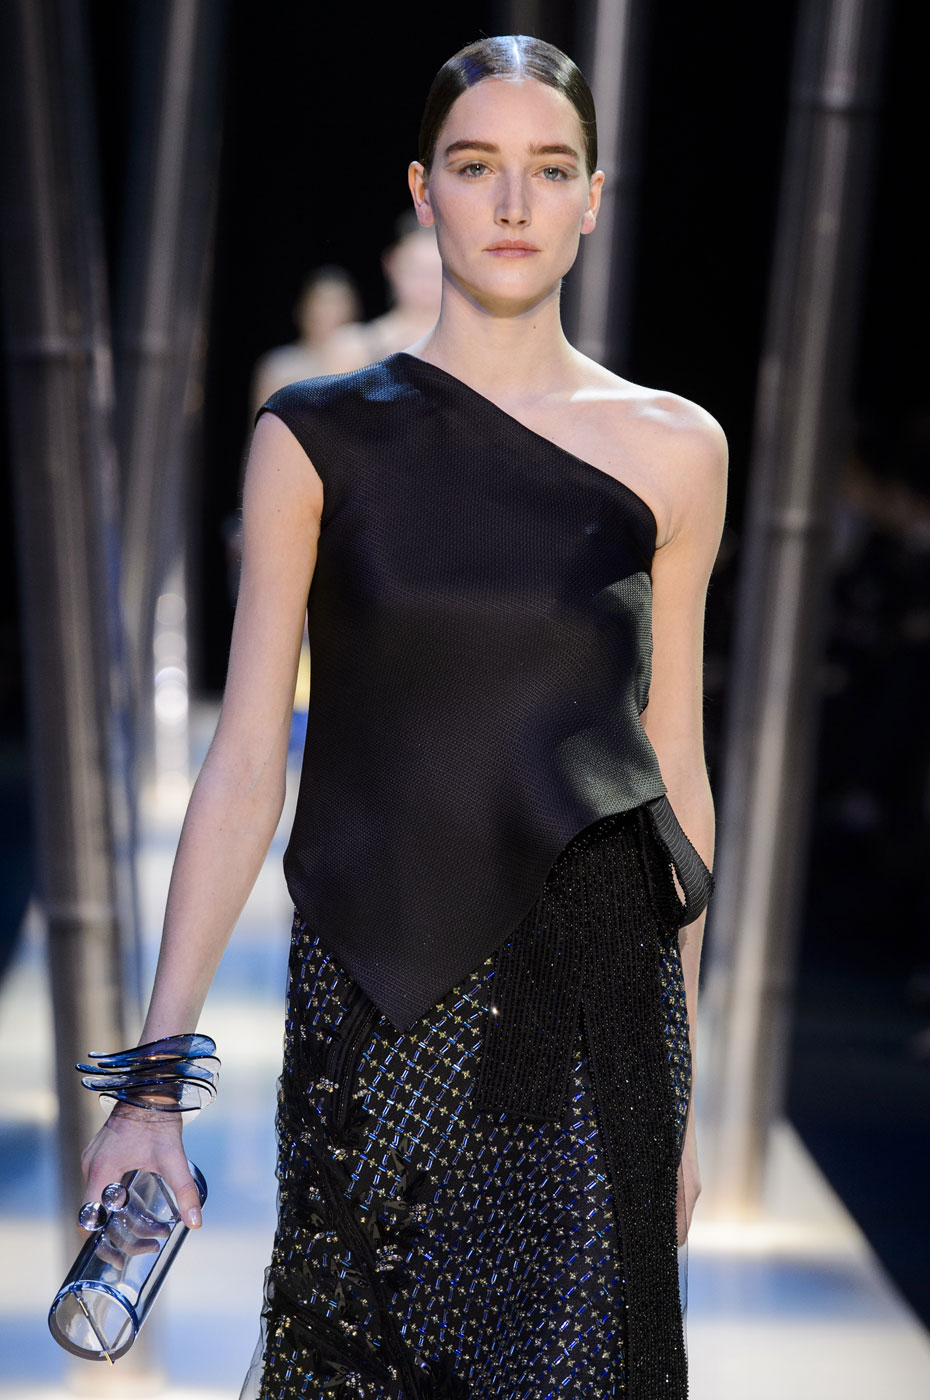 Giorgio-armani-Prive-fashion-runway-show-haute-couture-paris-spring-2015-the-impression-134